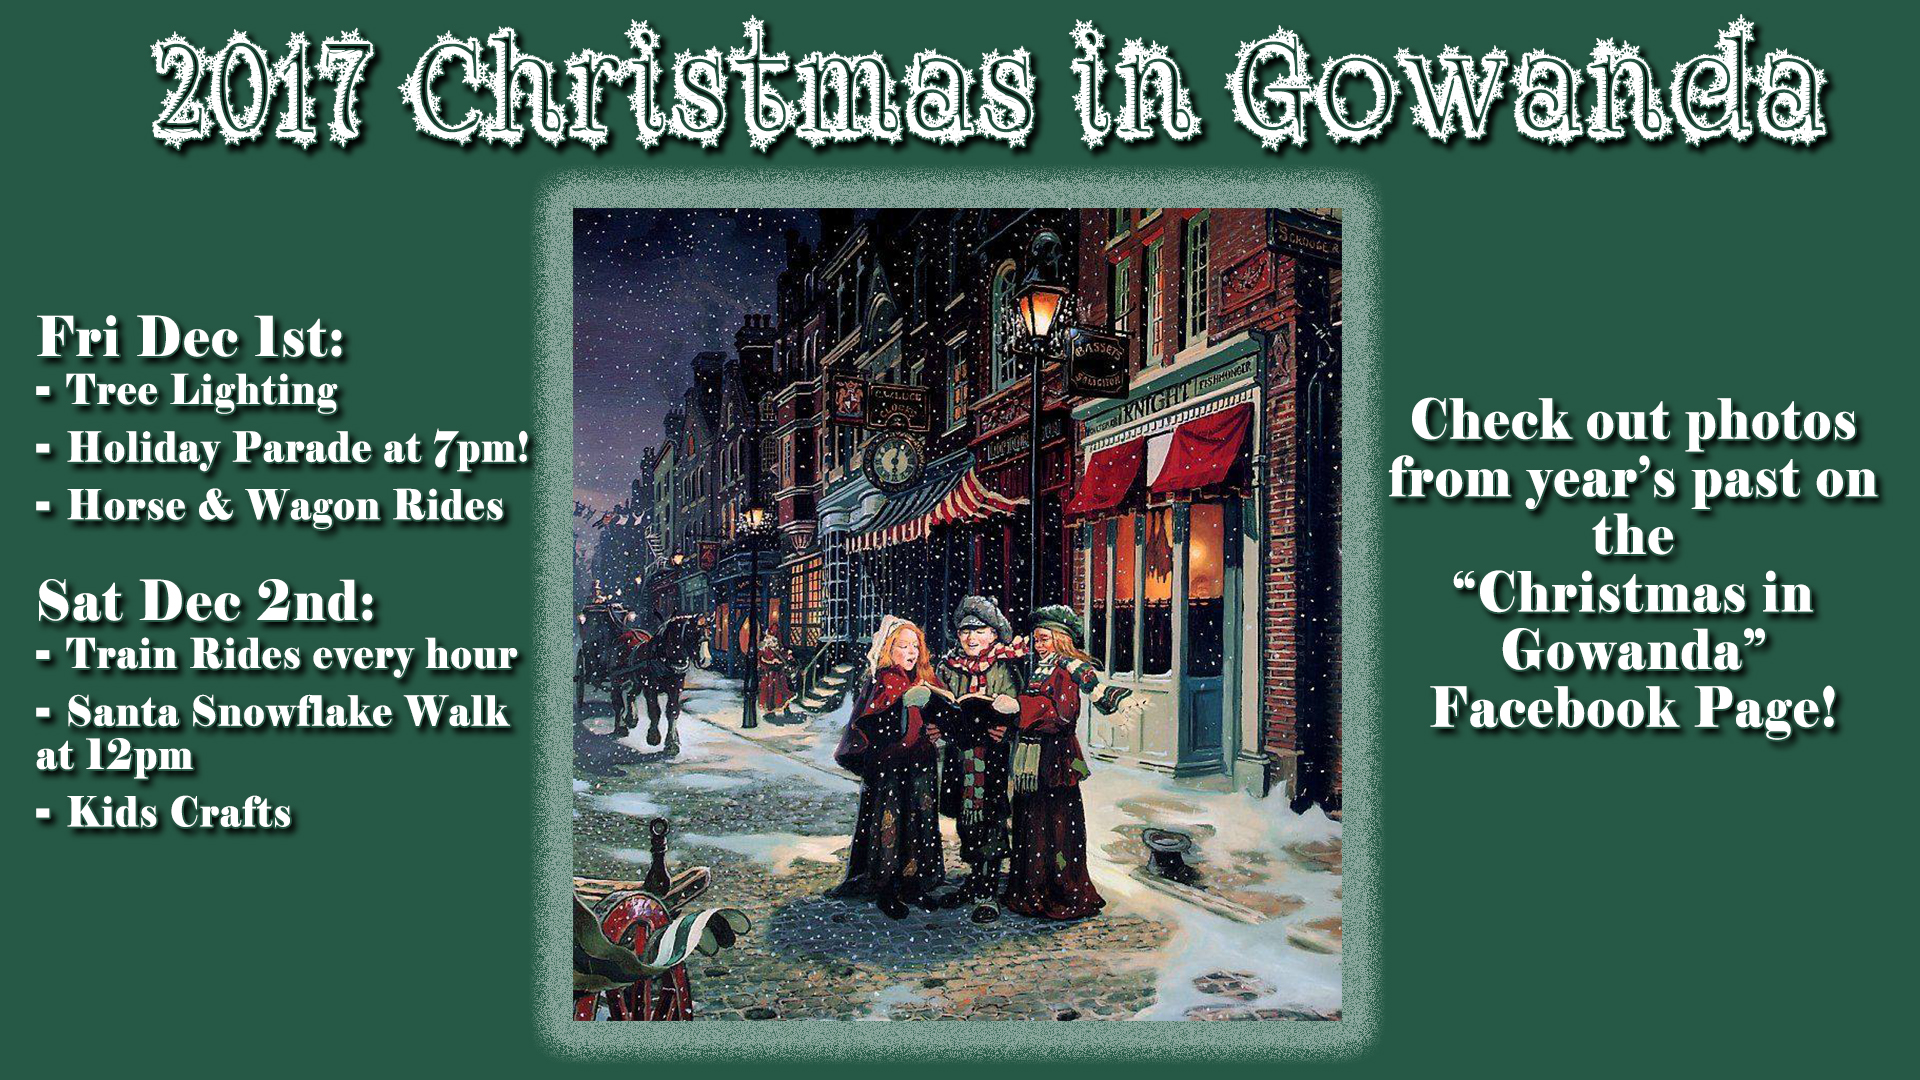 Christmas in Gowanda 2017